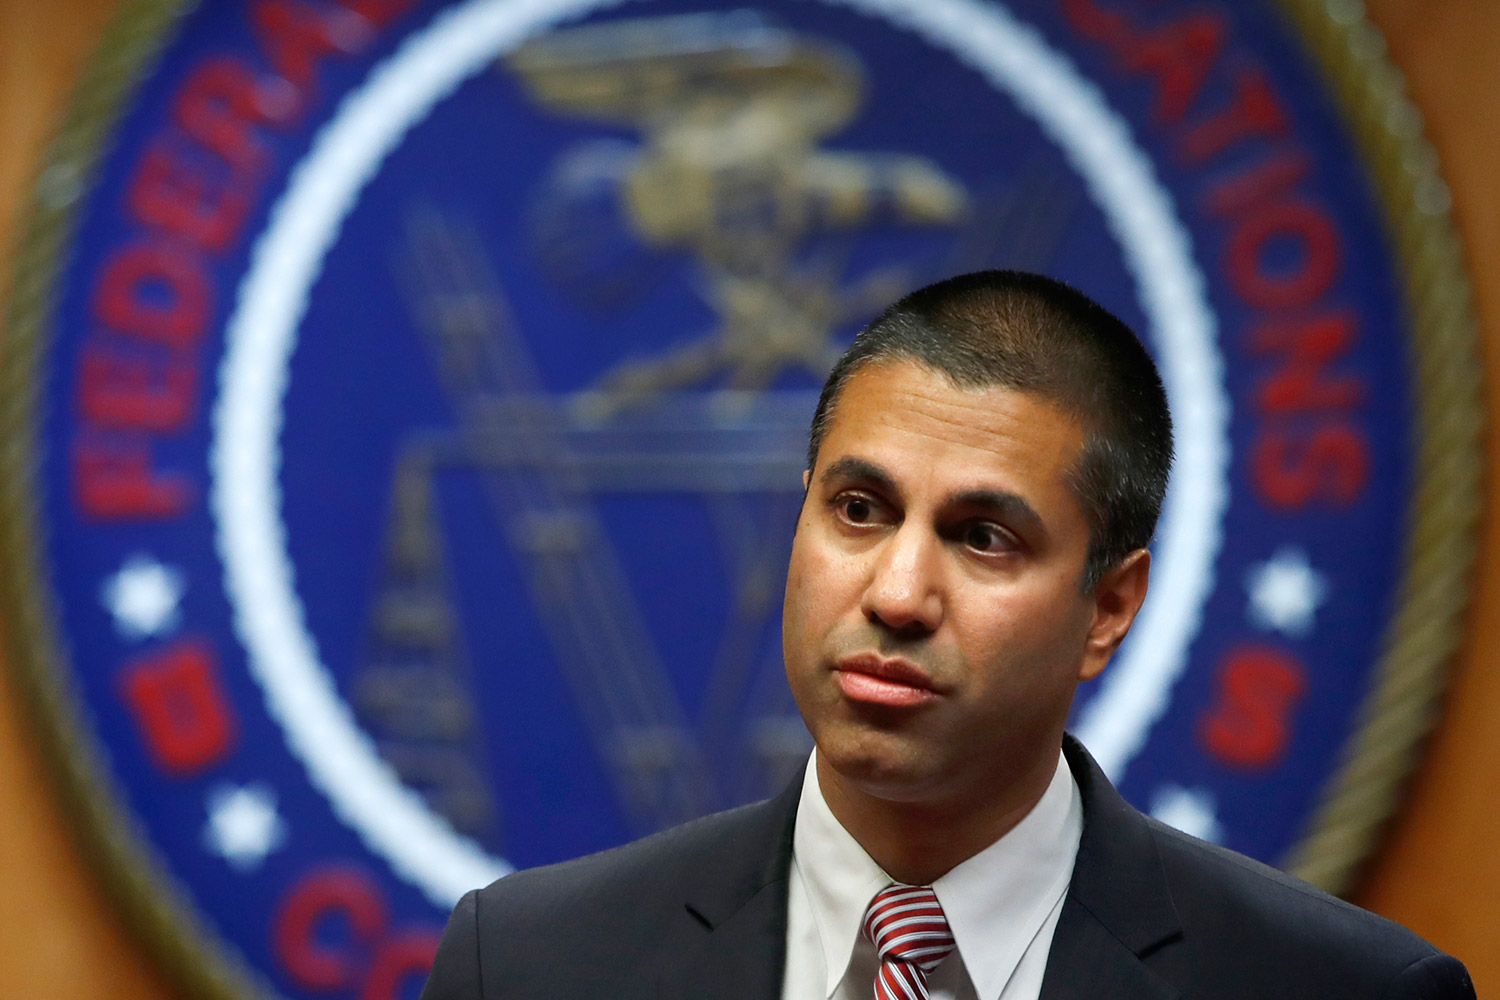 FCC repeals 'net neutrality' rules, putting providers in charge of internet access